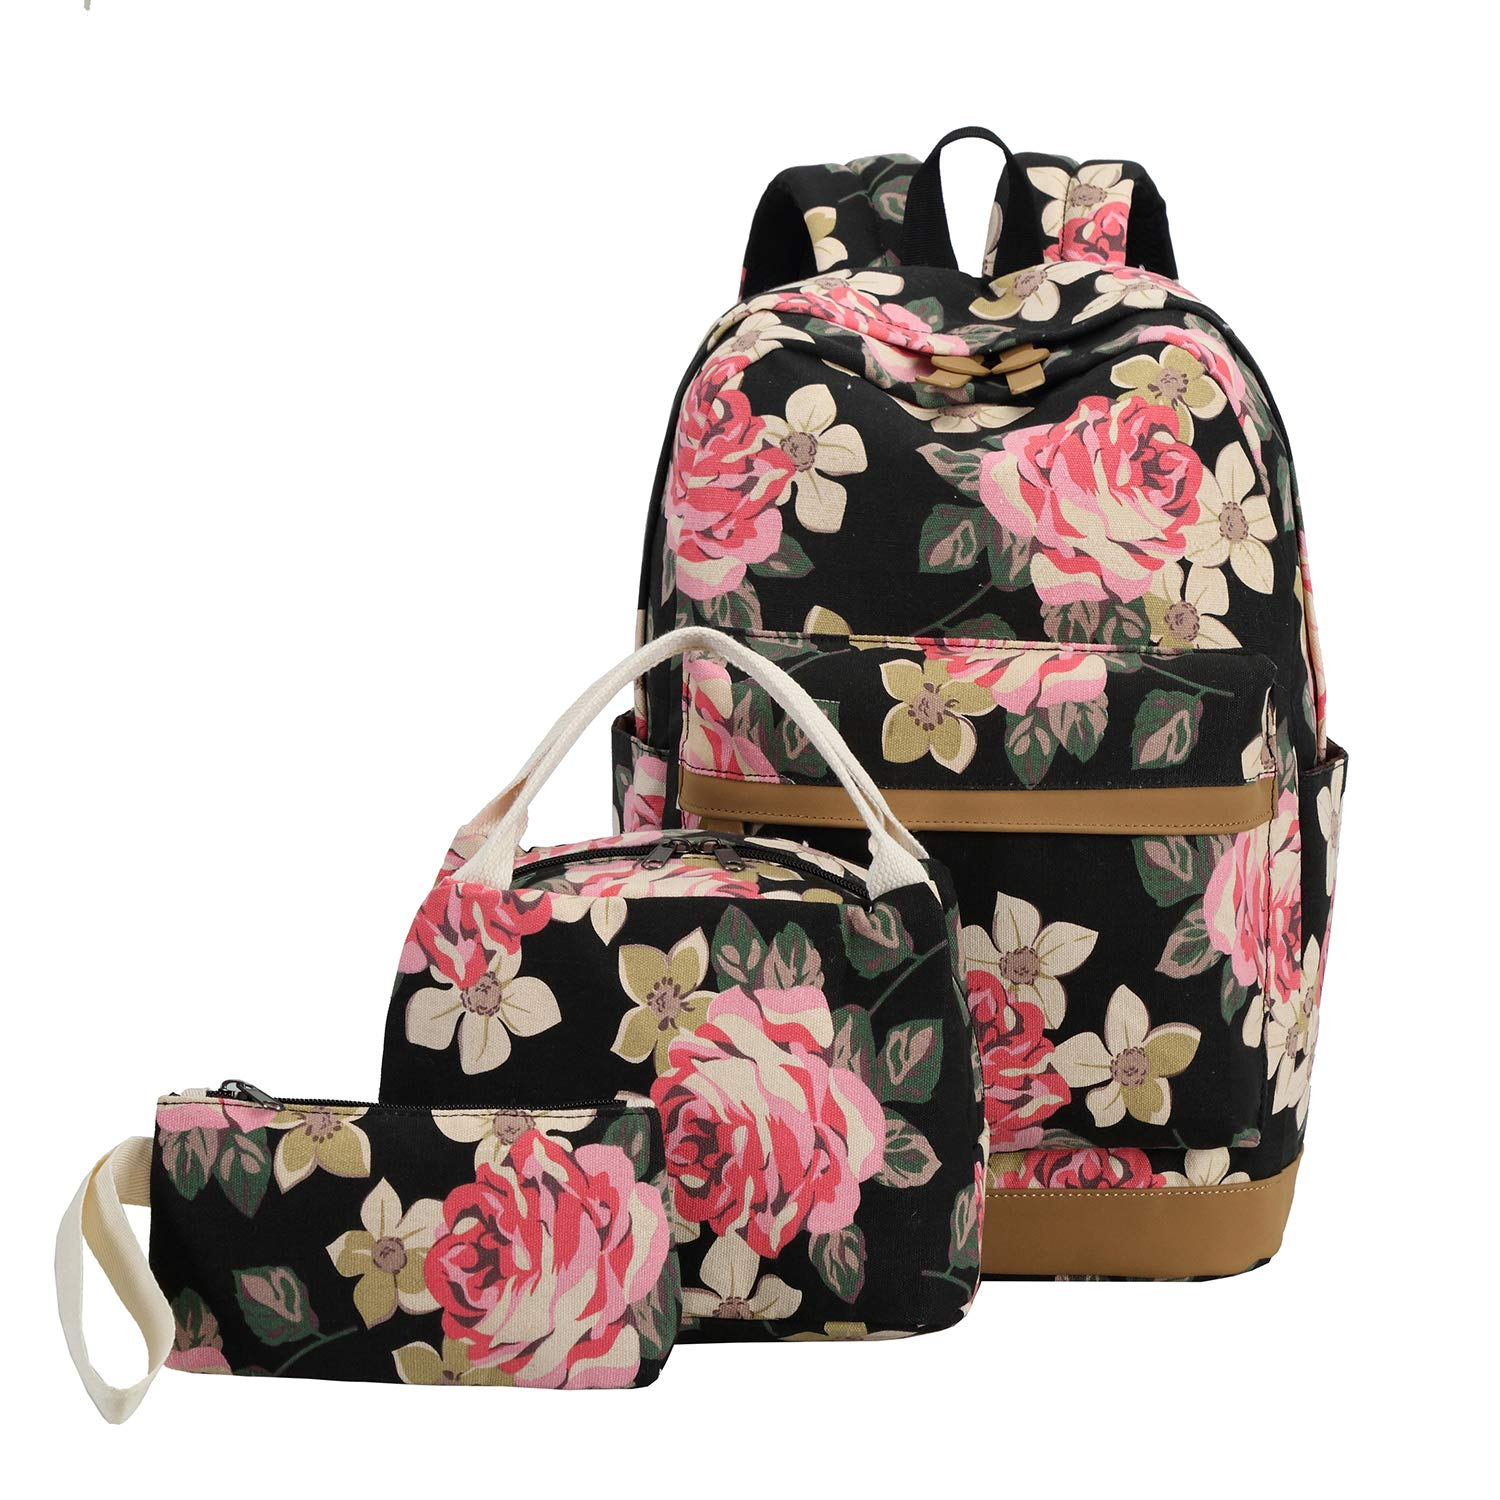 School Backpack Girls Teens Bookbags Set 15 inches Laptop Bag Kids Lunch Tote Bag Clutch Purse (Big Floral - Black) by BLUBOON